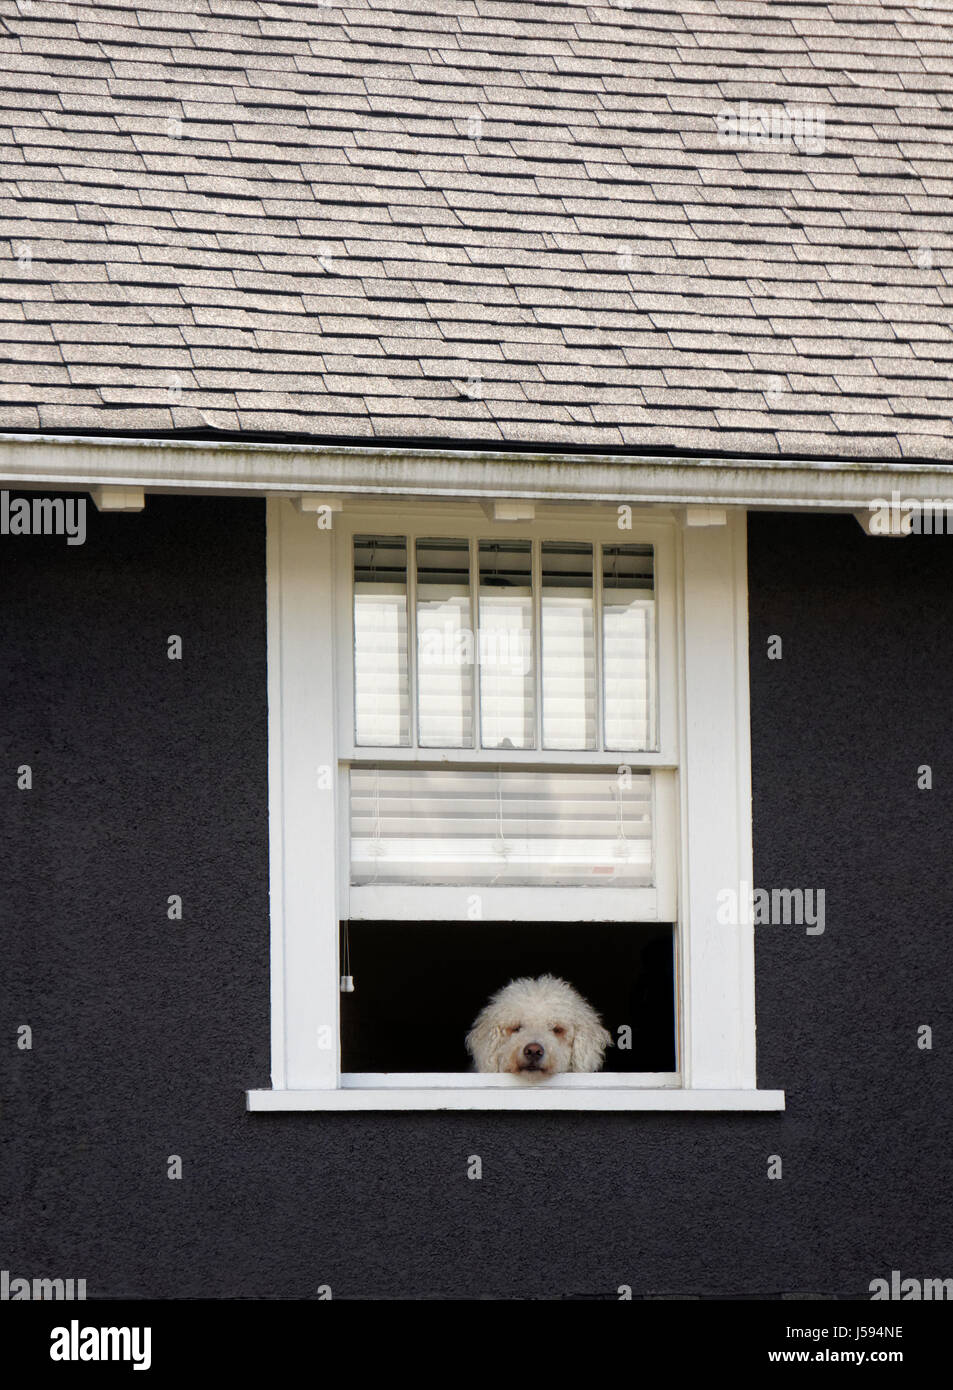 bored-looking-shaggy-white-dog-peering-o